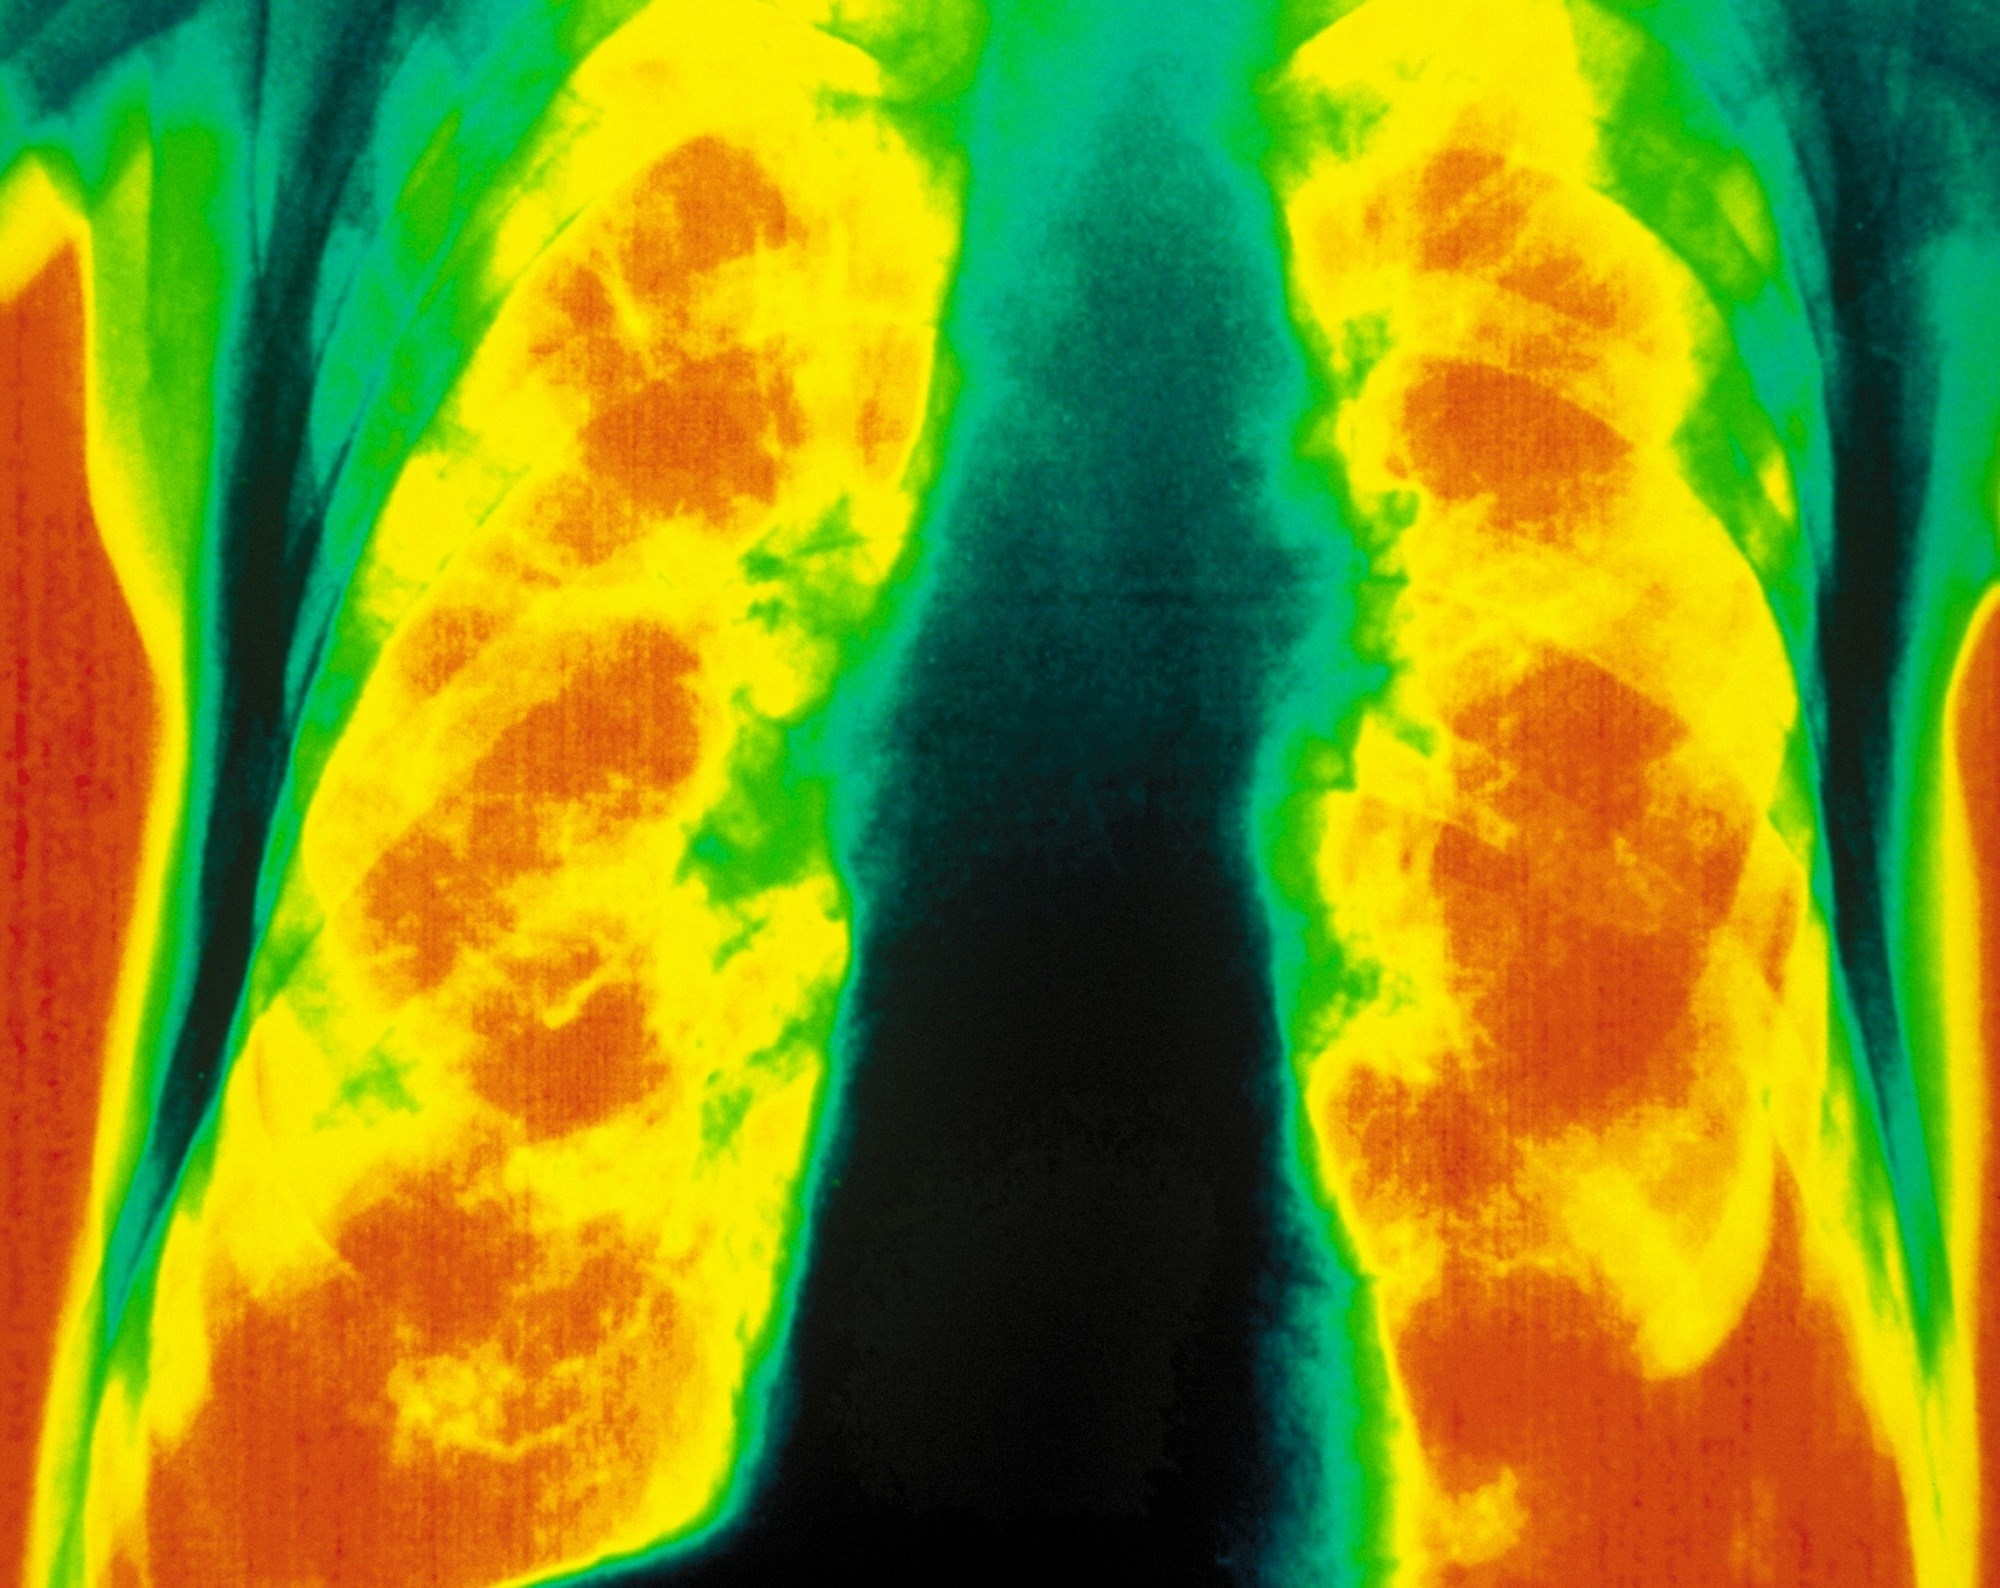 COPD Tied to Obesity in Male, Female Never-Smokers